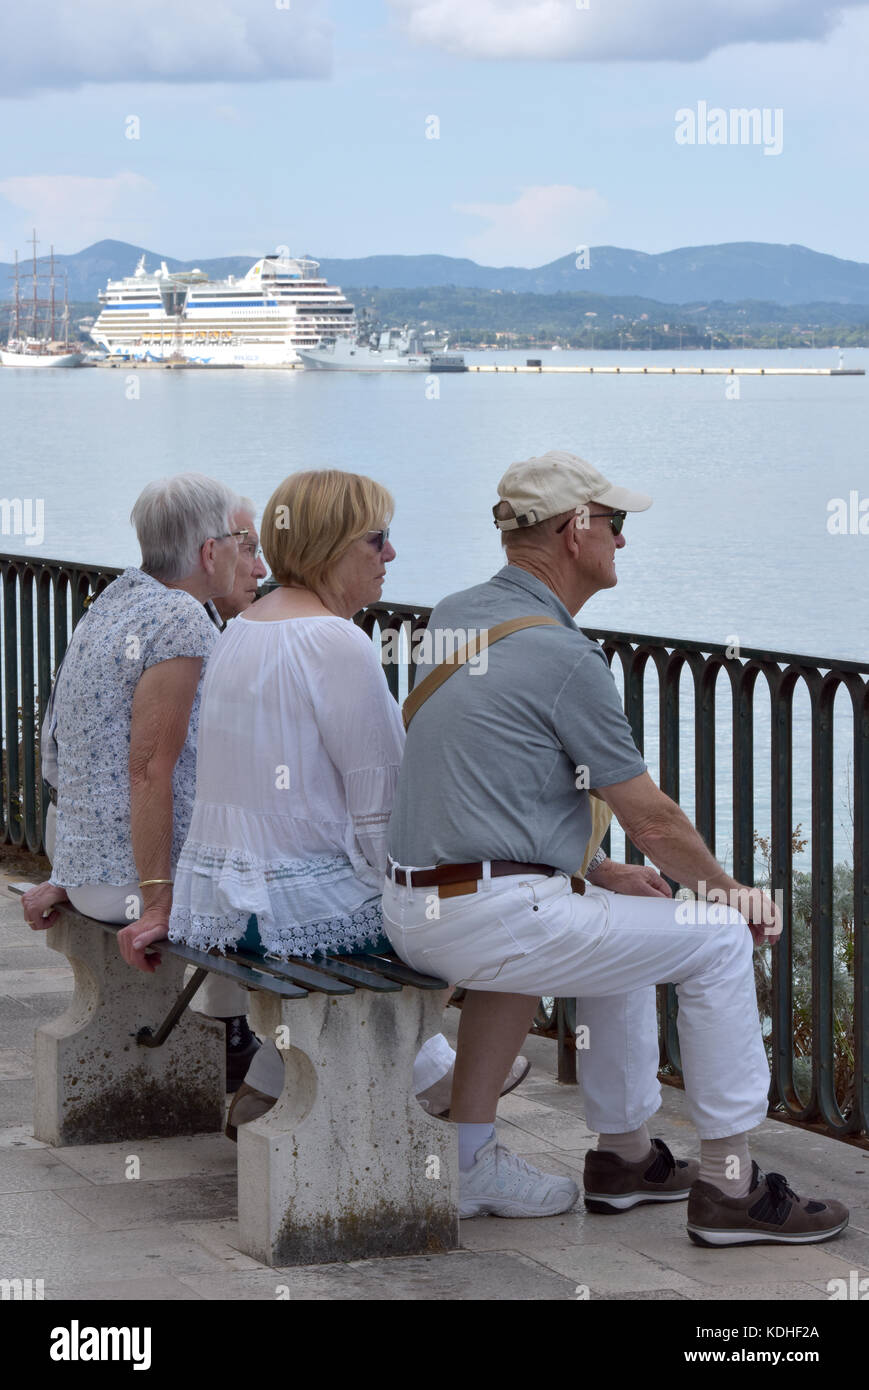 four older or elderly pensioners sitting on a bench in Kerkira, corfu, Greece with a cruise ship or liner in the - Stock Image